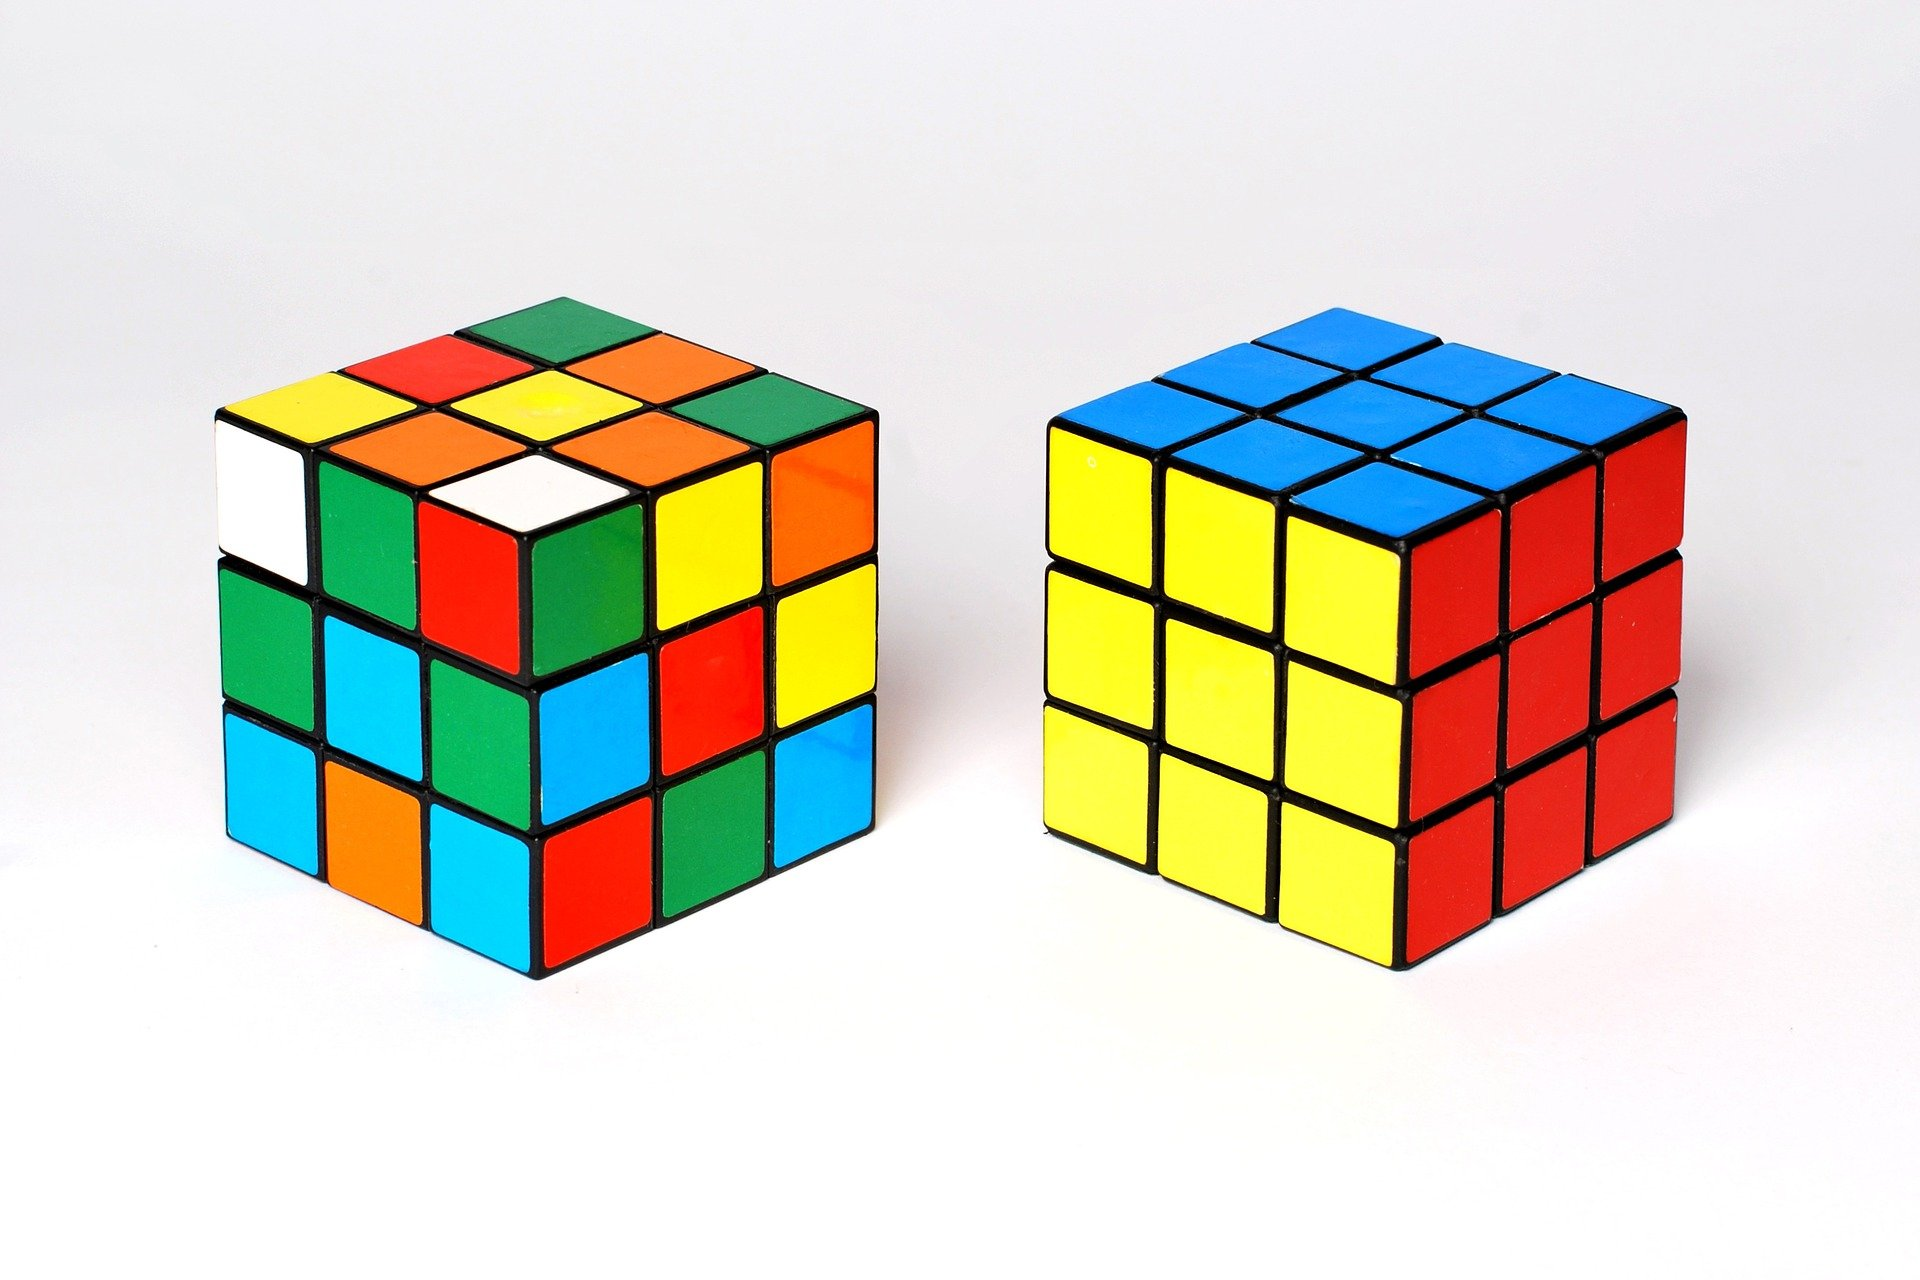 Puzzle, Game, Cube, Rubik'S Cube, Toy, Think, TaskPuzzle Game Cube Rubik's Cube Toy Think Task